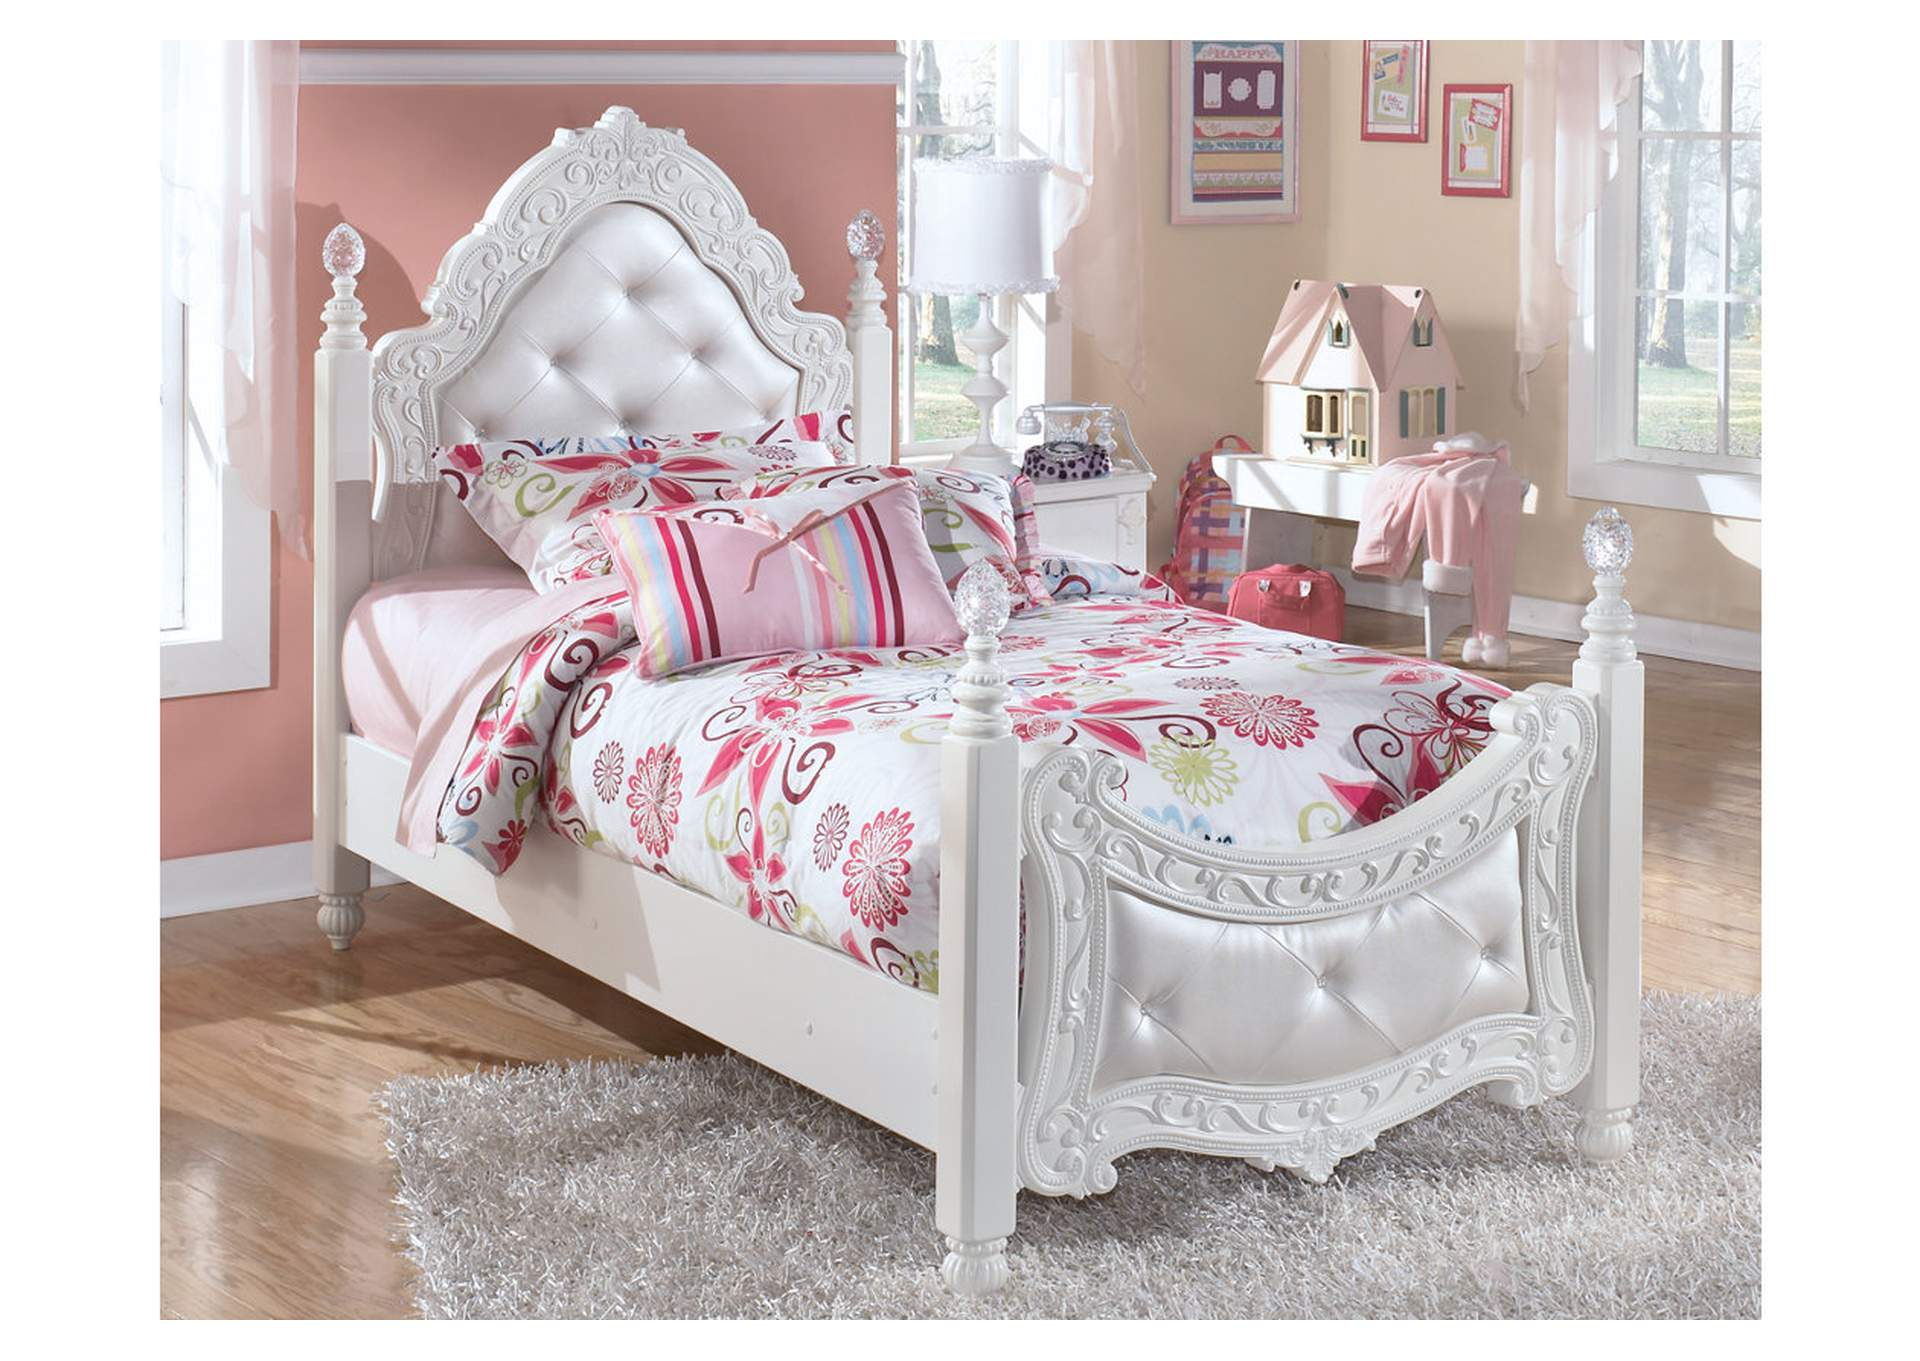 Exquisite Twin Poster Bed,Signature Design by Ashley